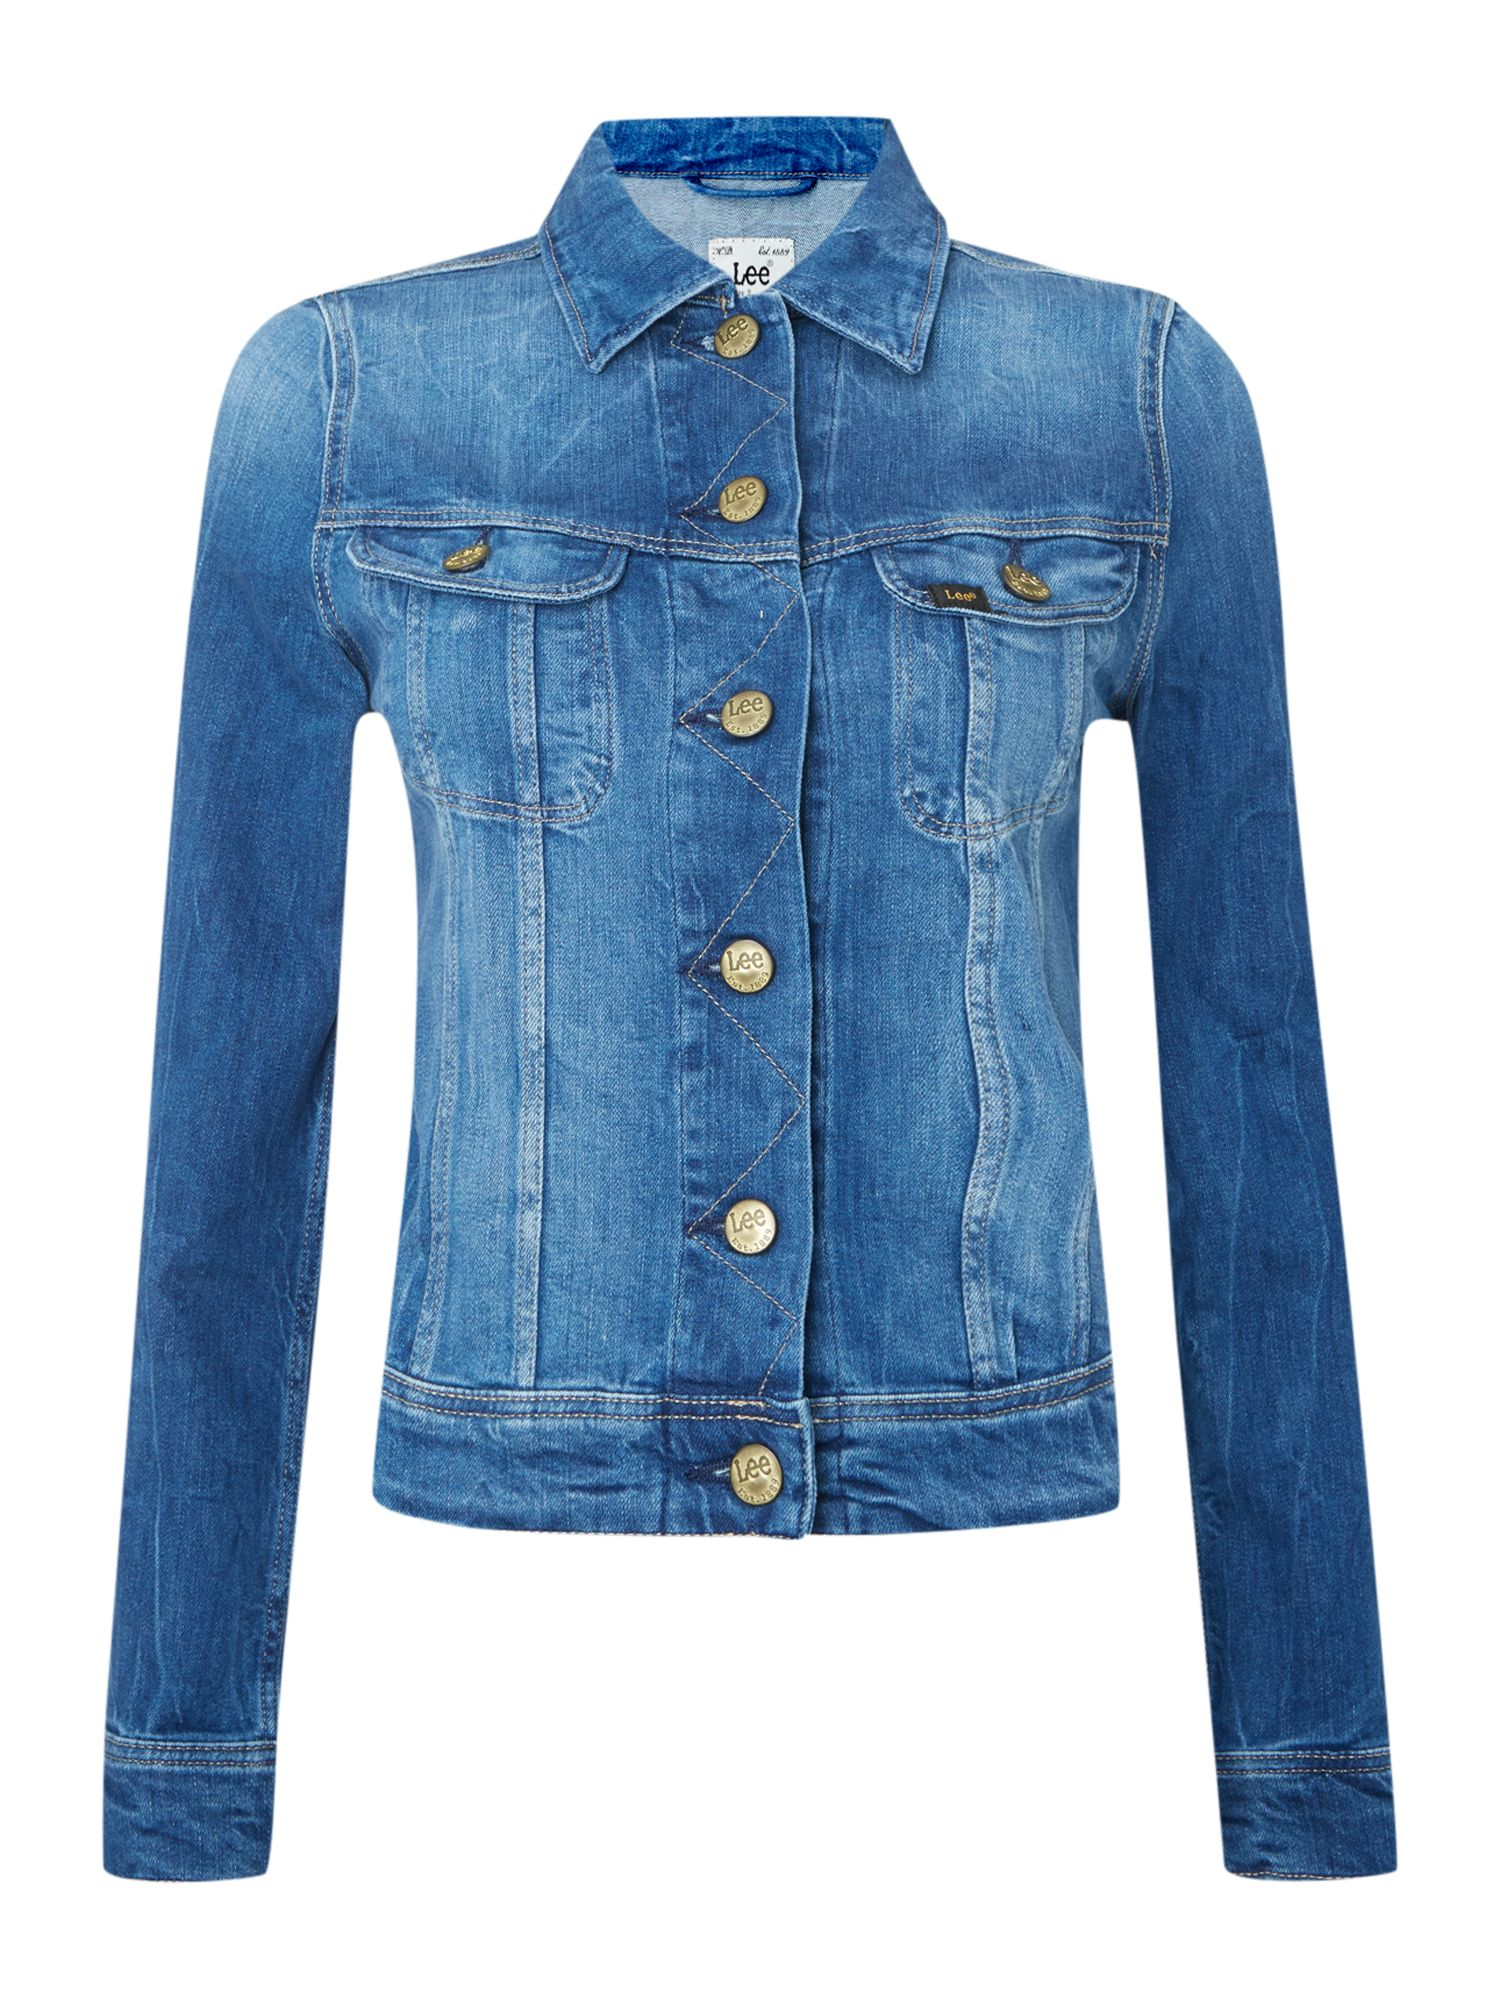 Sleeveless rider denim jacket in spring blue